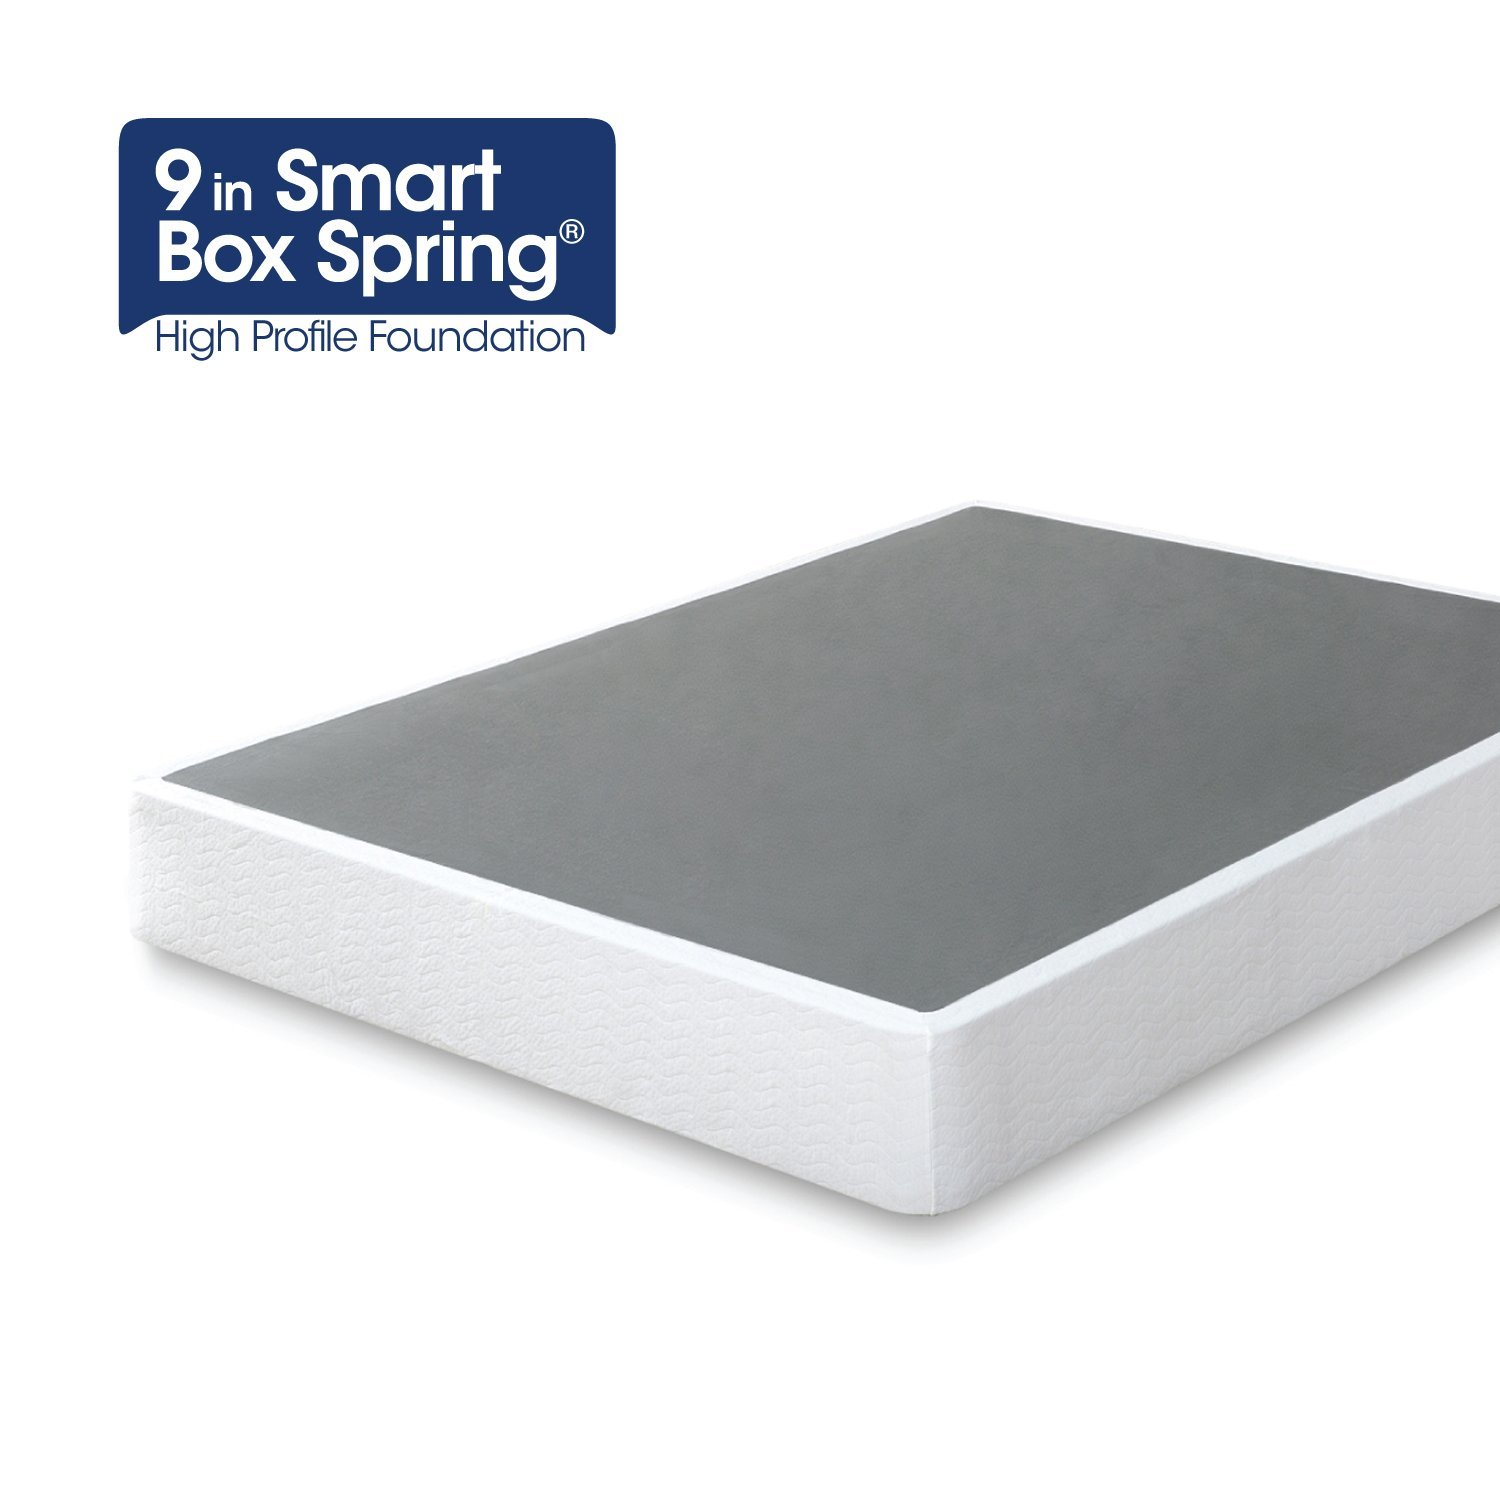 Zinus 9 Inch High Profile Smart Box Spring / Mattress Foundation